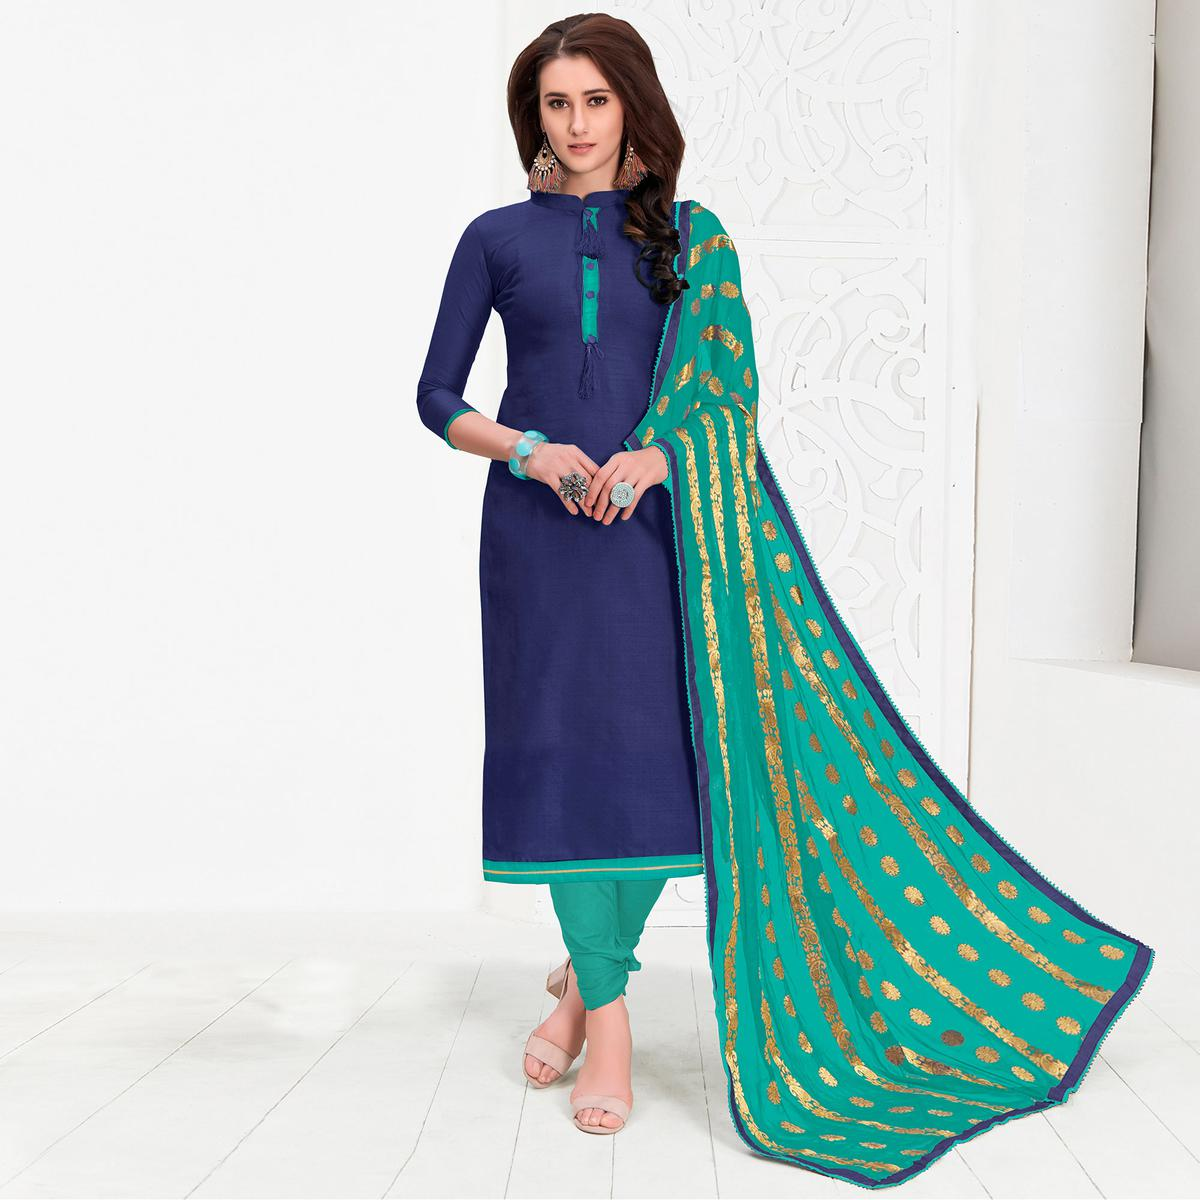 Stunning Blue Colored Casual Cotton Suit